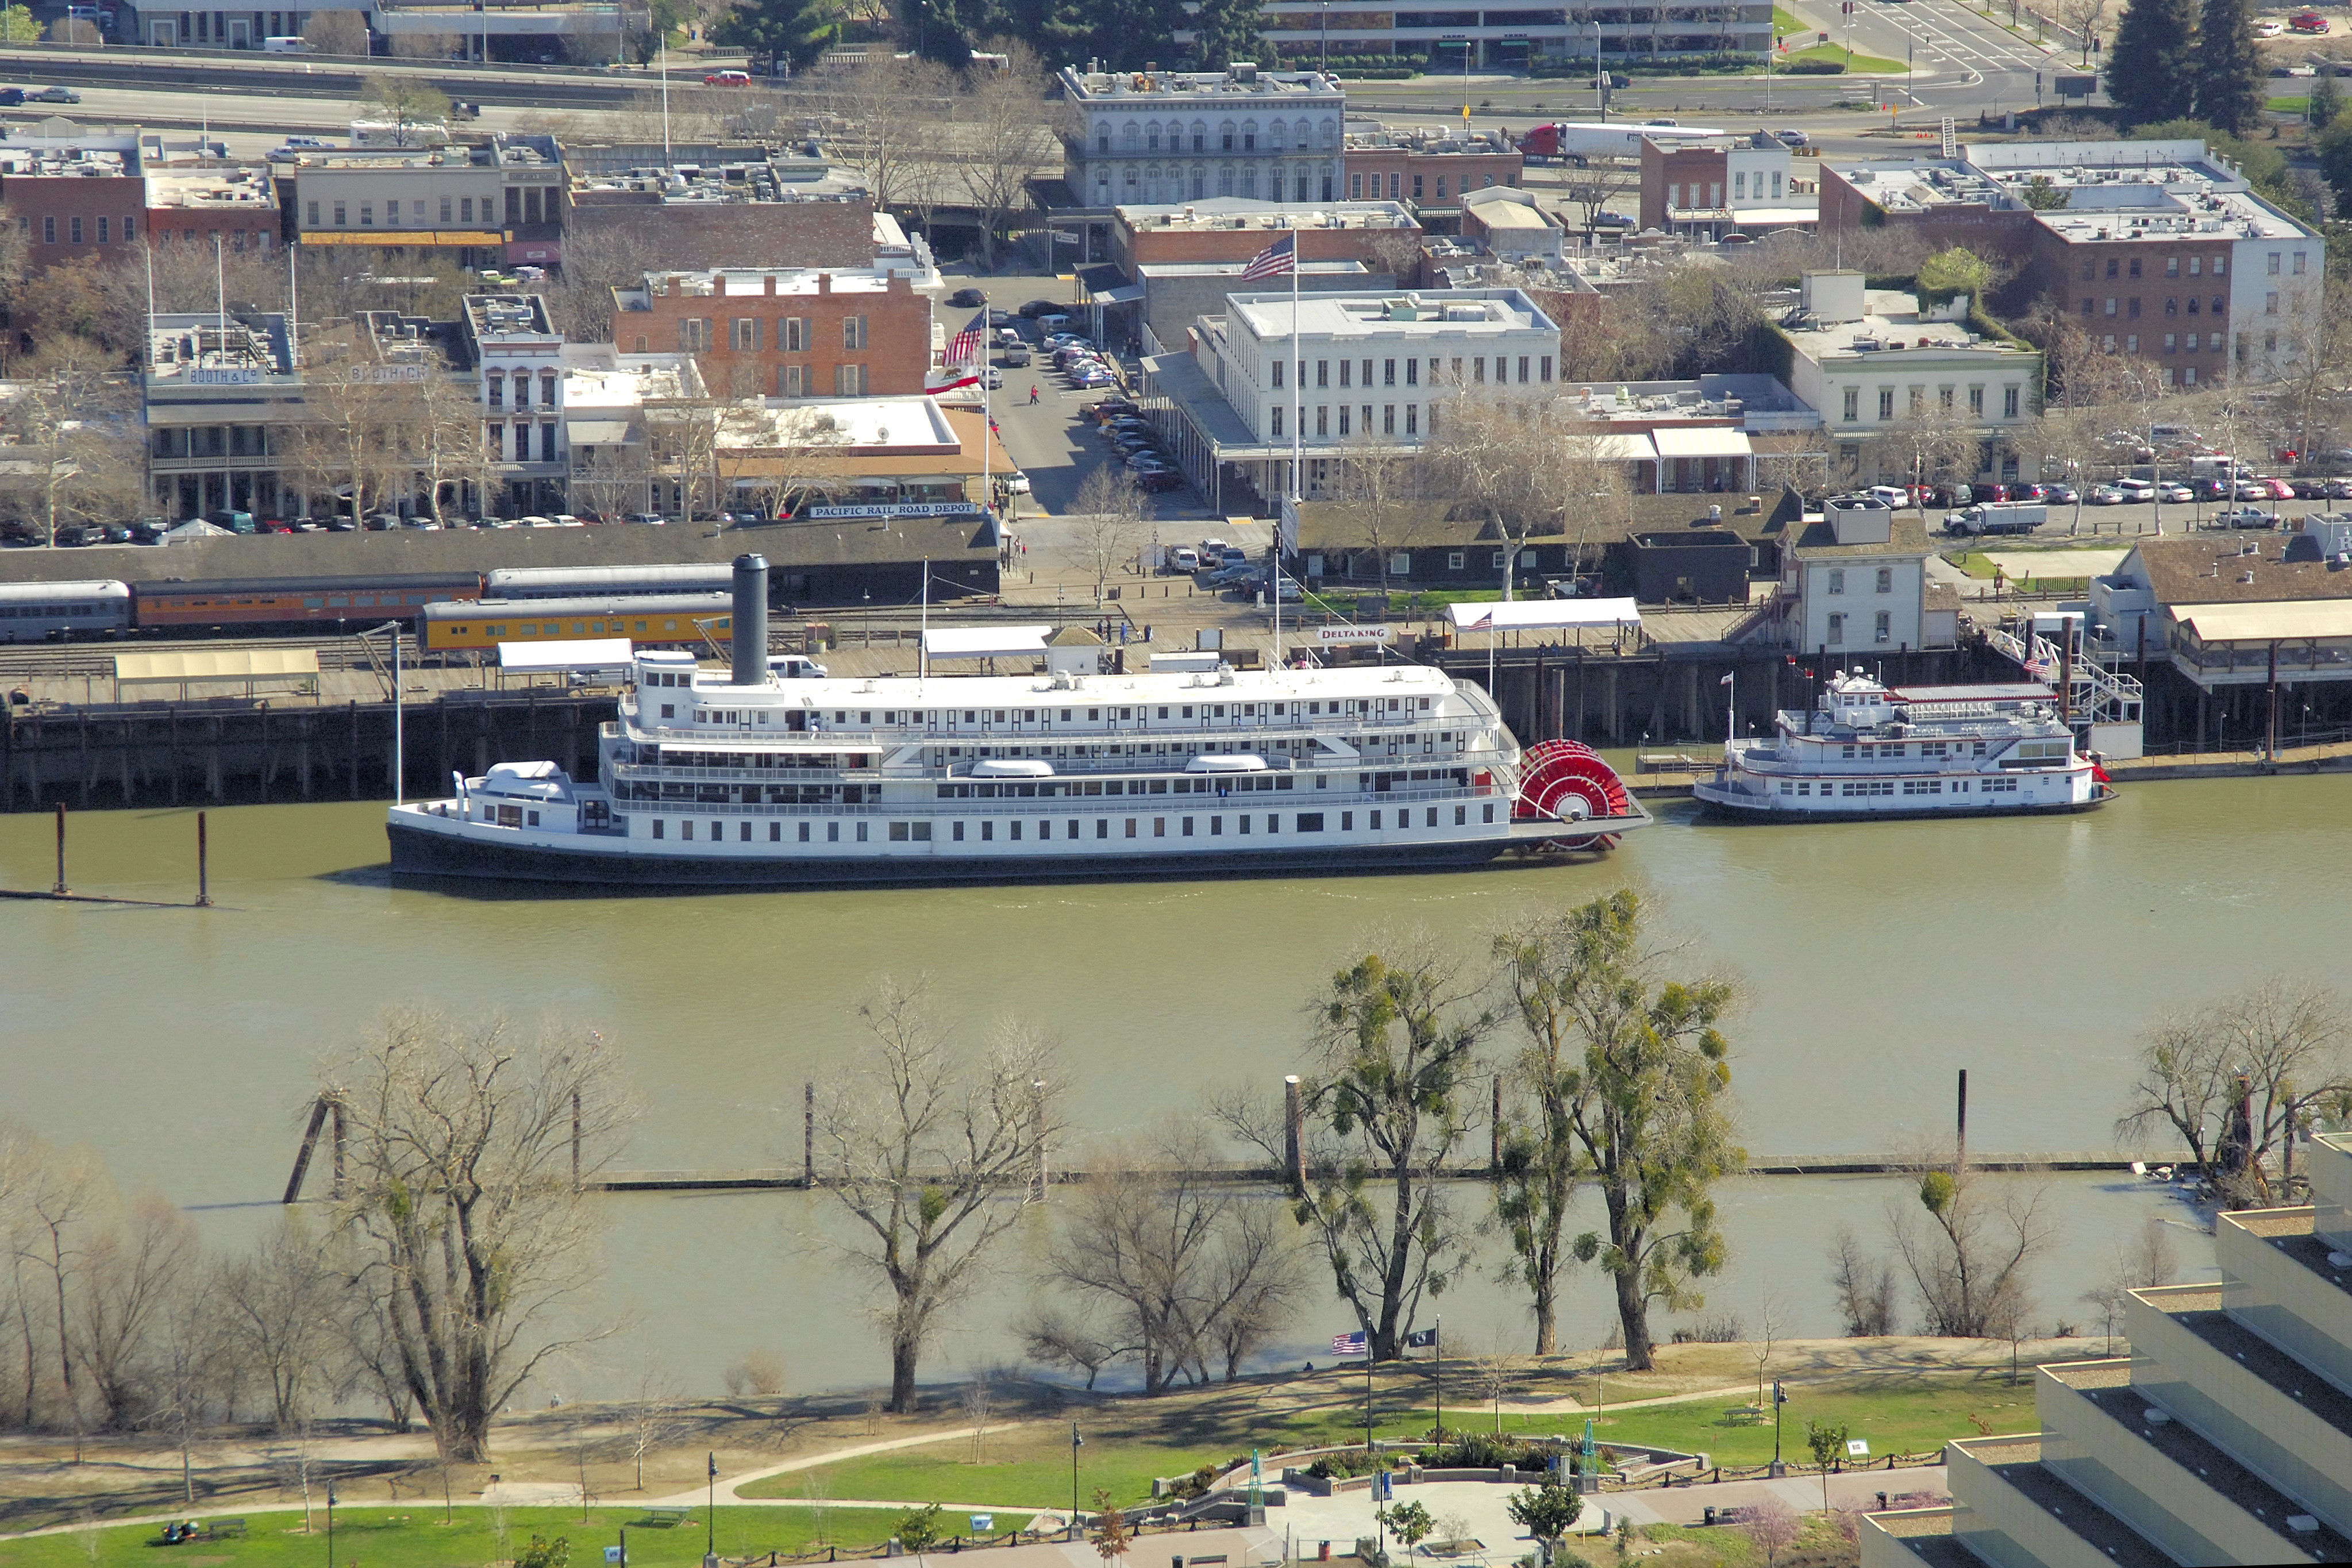 Riverboat Delta King Ferry in Old Sacramento, CA, United